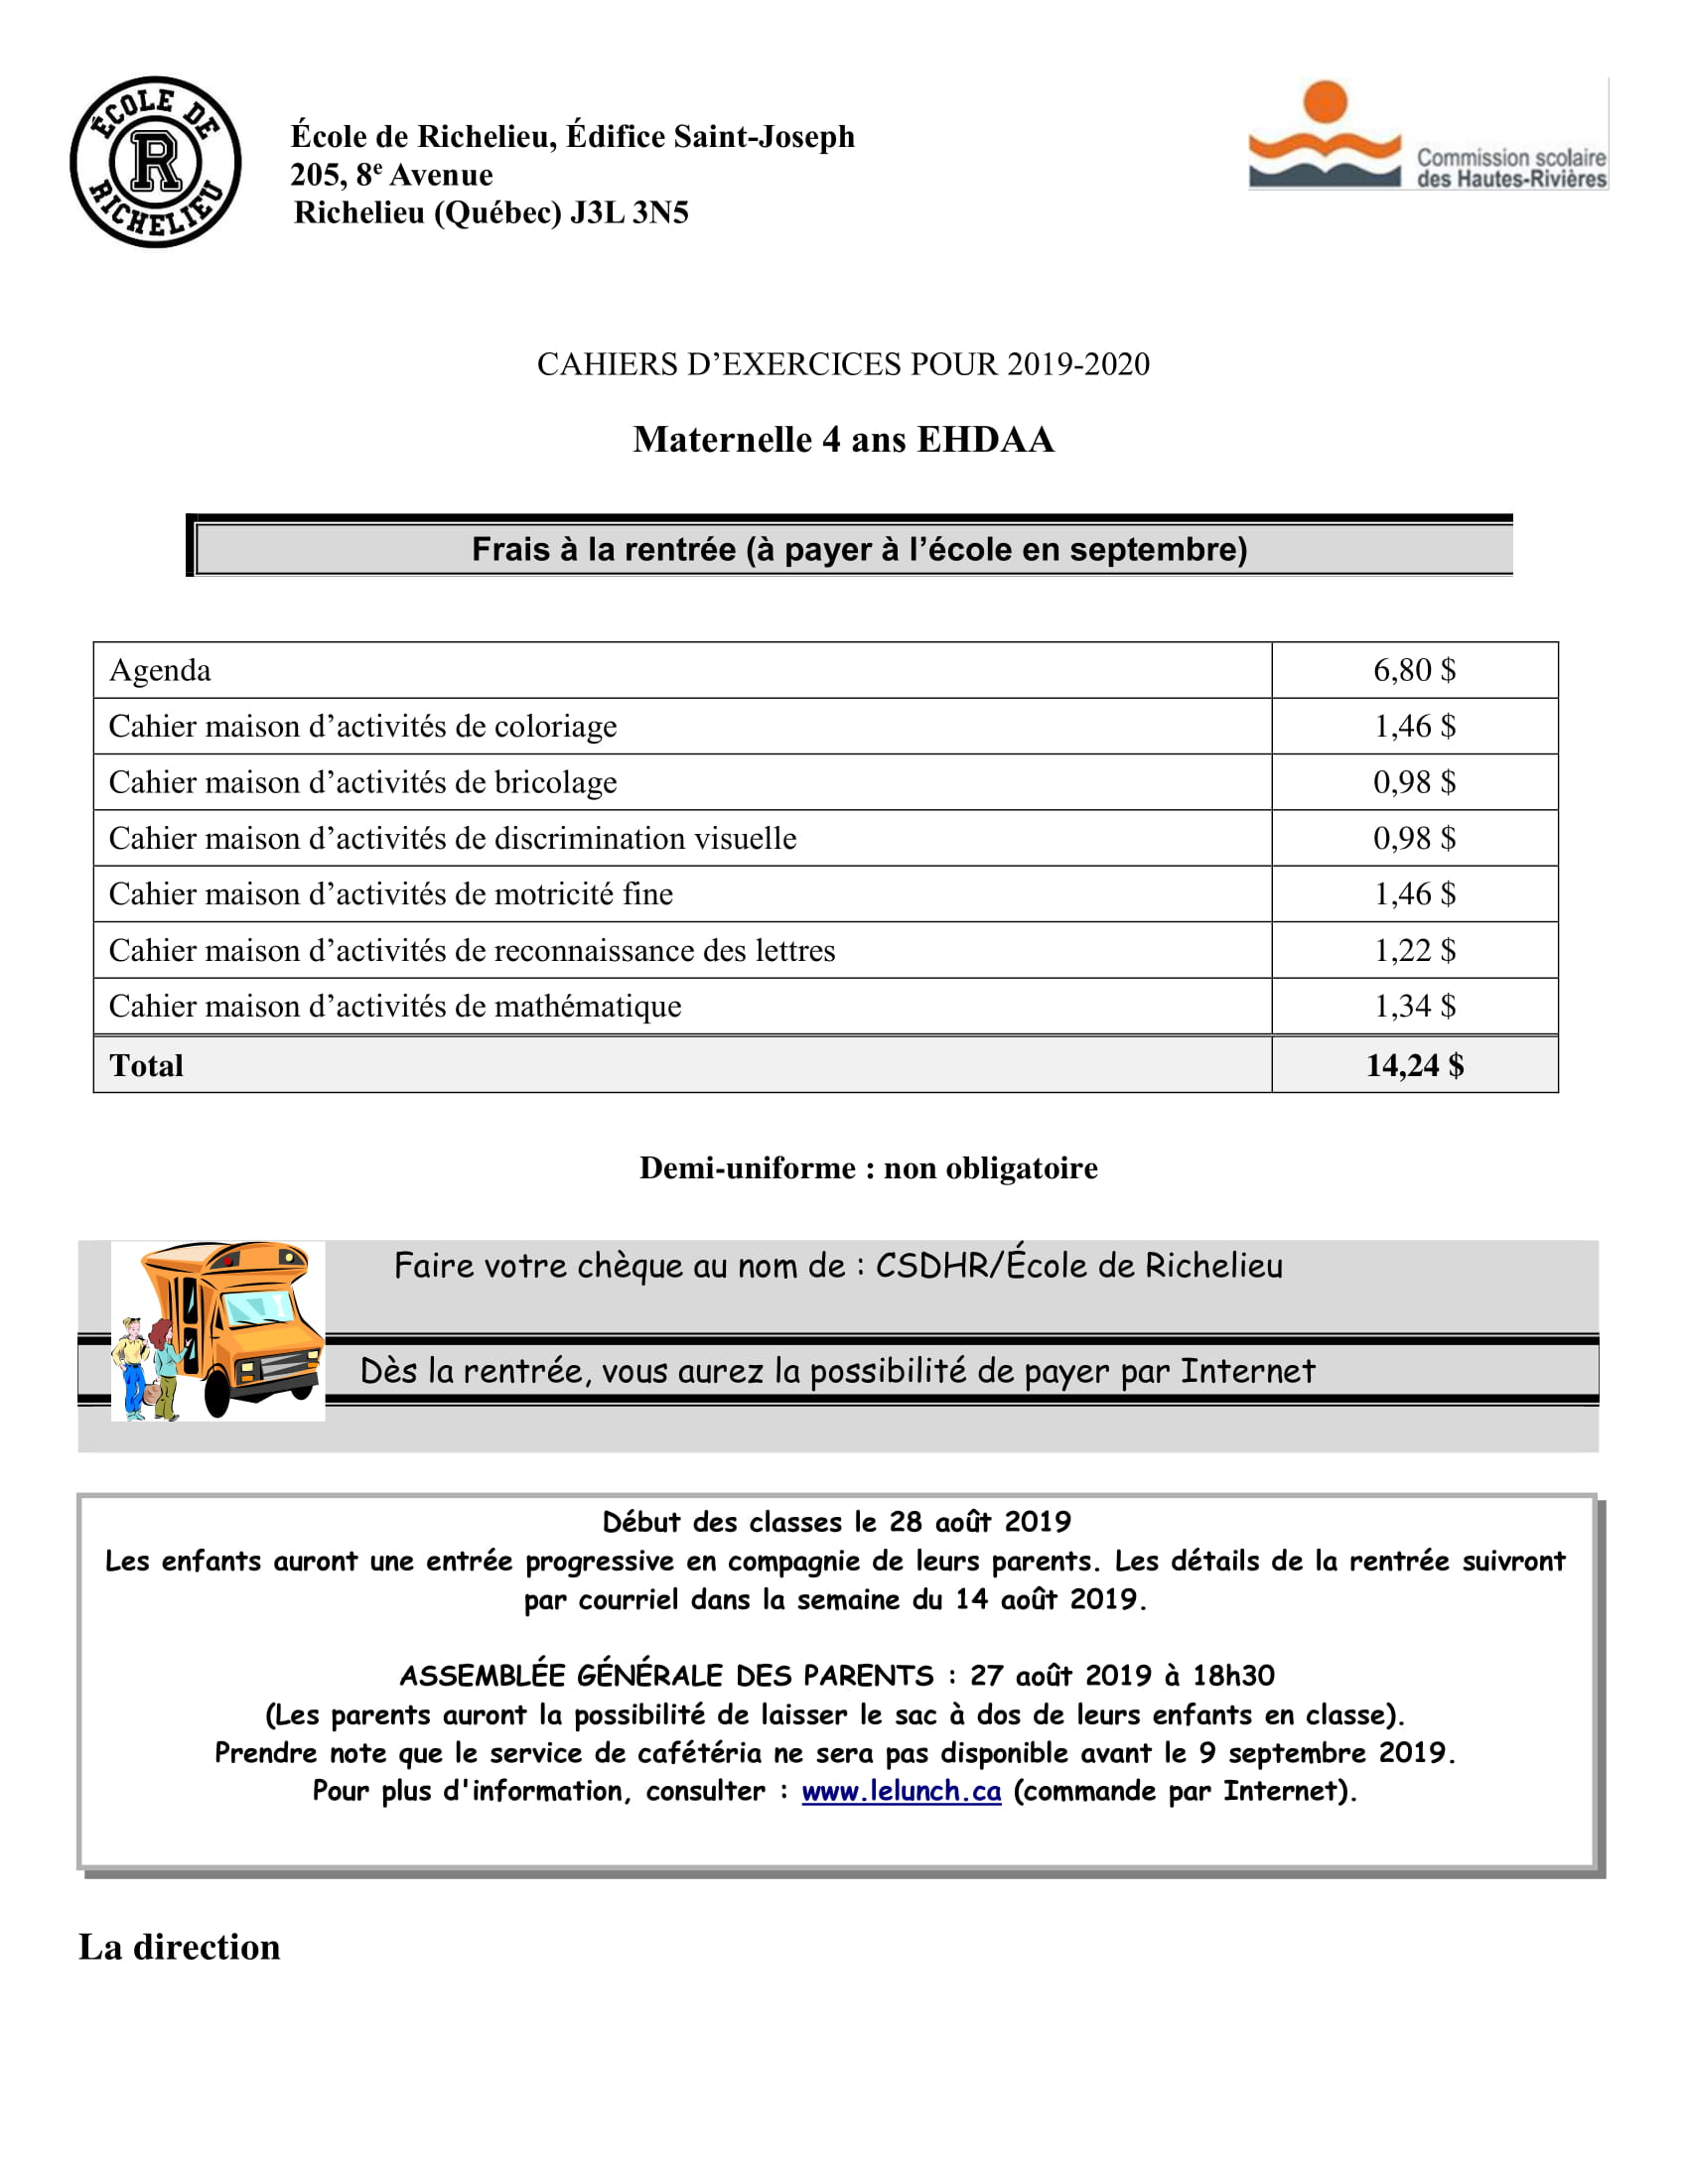 032_19-20_EHDAA_4ans_effets_scolaires-1.jpg